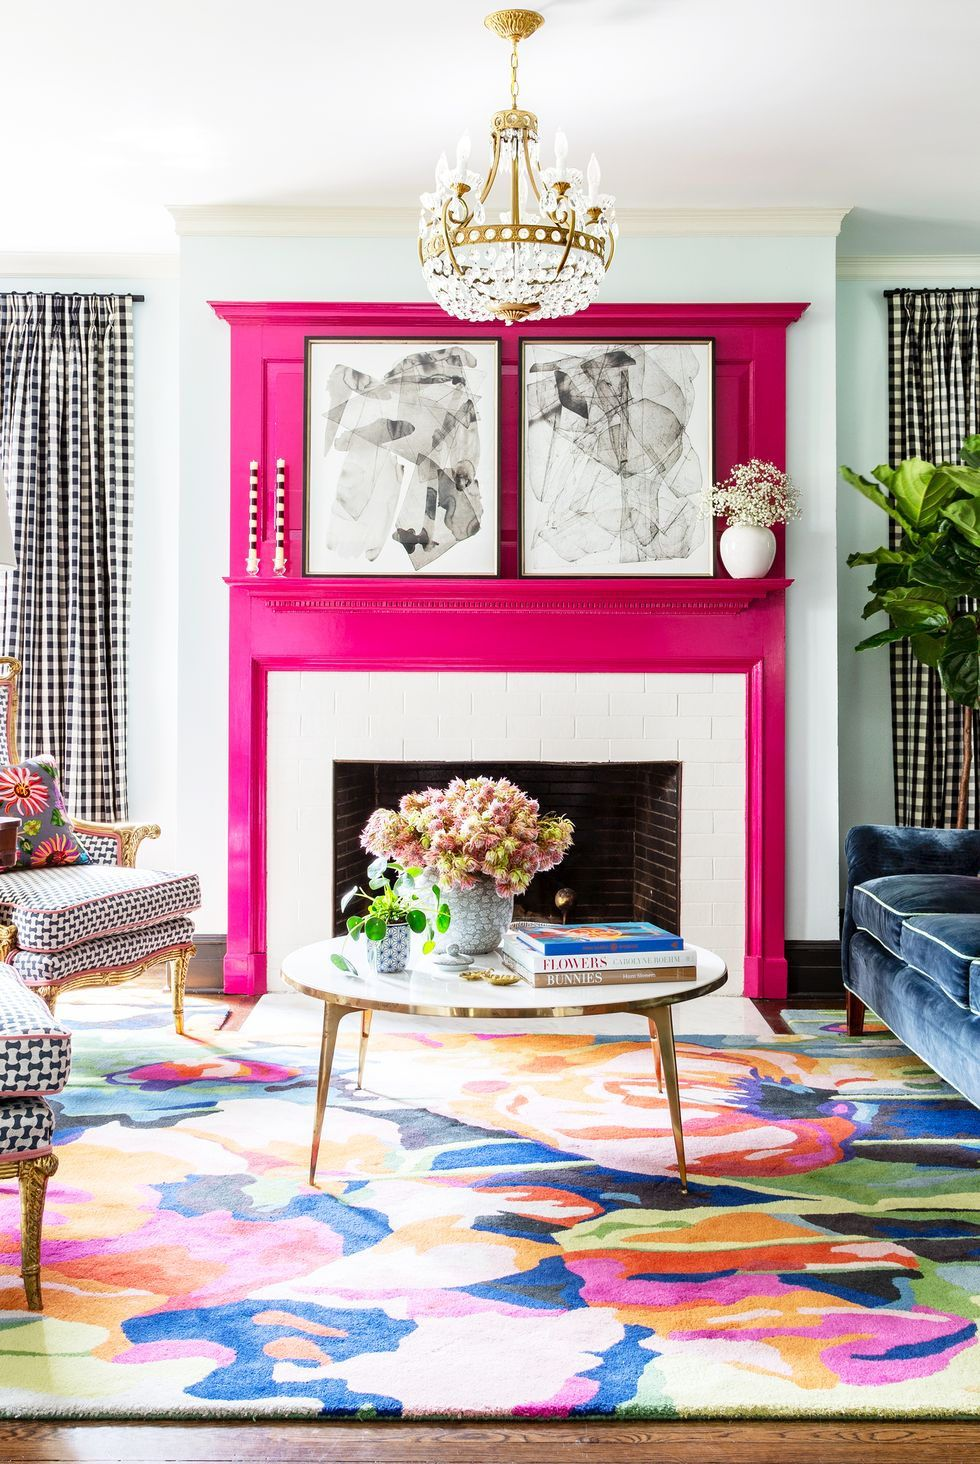 These Chic Pink Rooms Will Make You Want To Repaint Your Entire House In 2020 Living Decor Home Decor Room Decor #pink #and #yellow #living #room